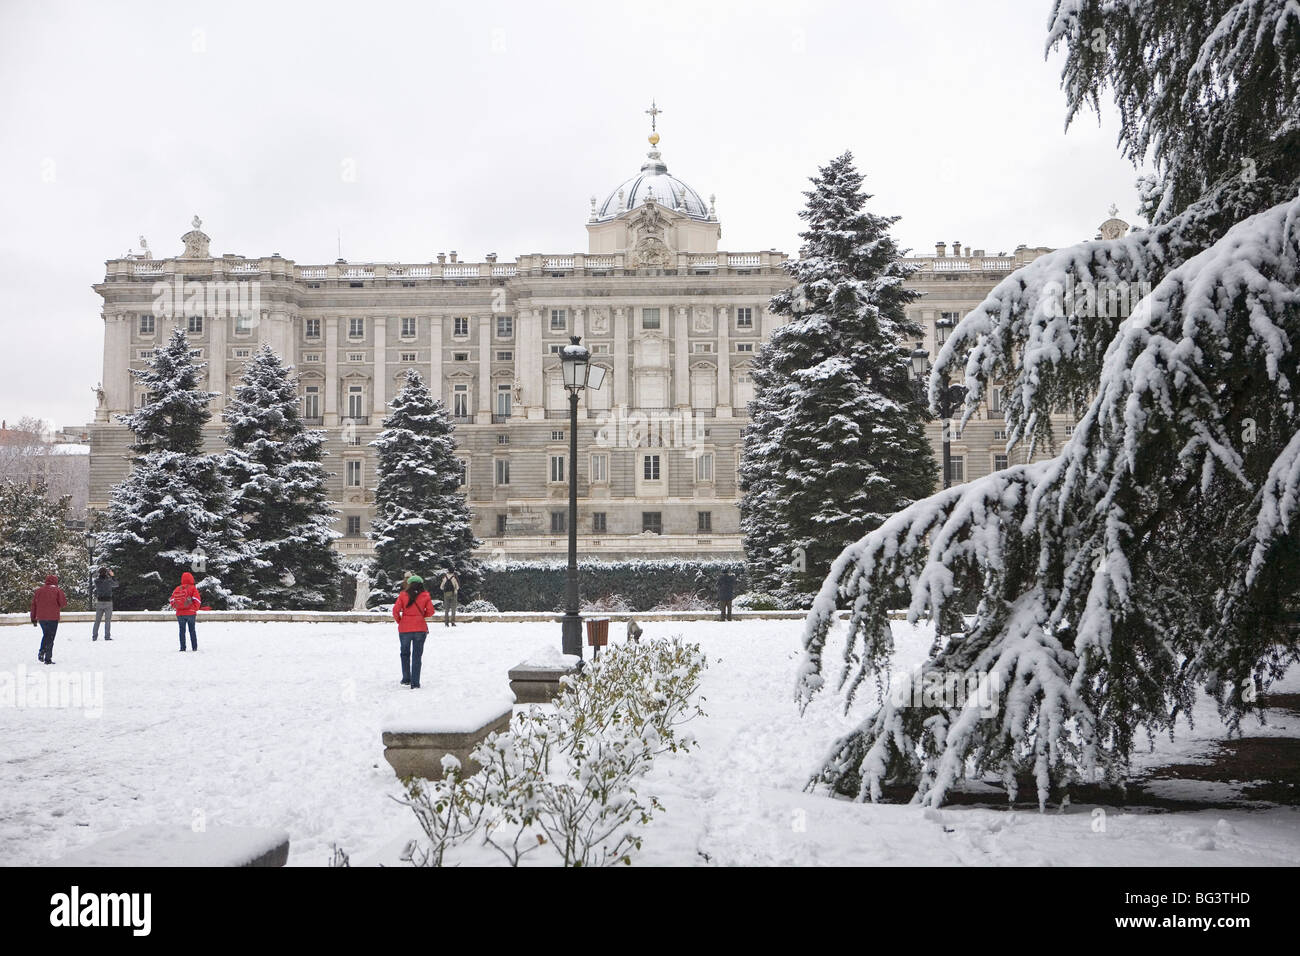 Snow Madrid High Resolution Stock Photography And Images Alamy